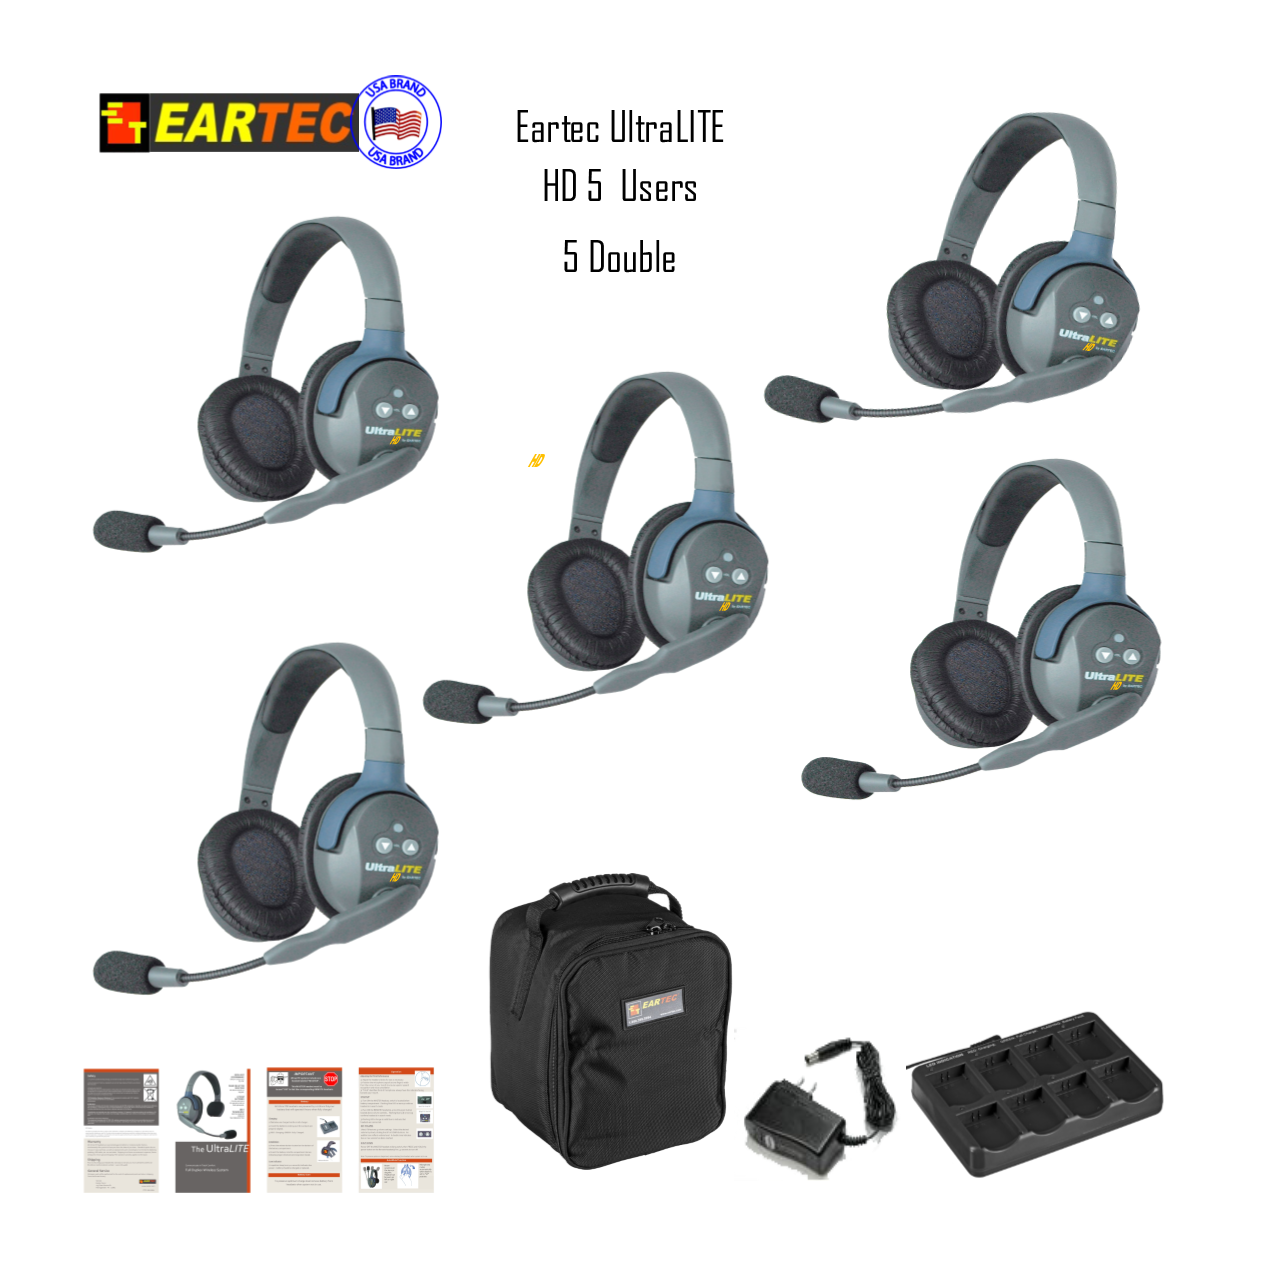 Eartec Ul5D Ultralite 5 Pers. System W/ 5 Double Headsets Intercom Systems Eartec